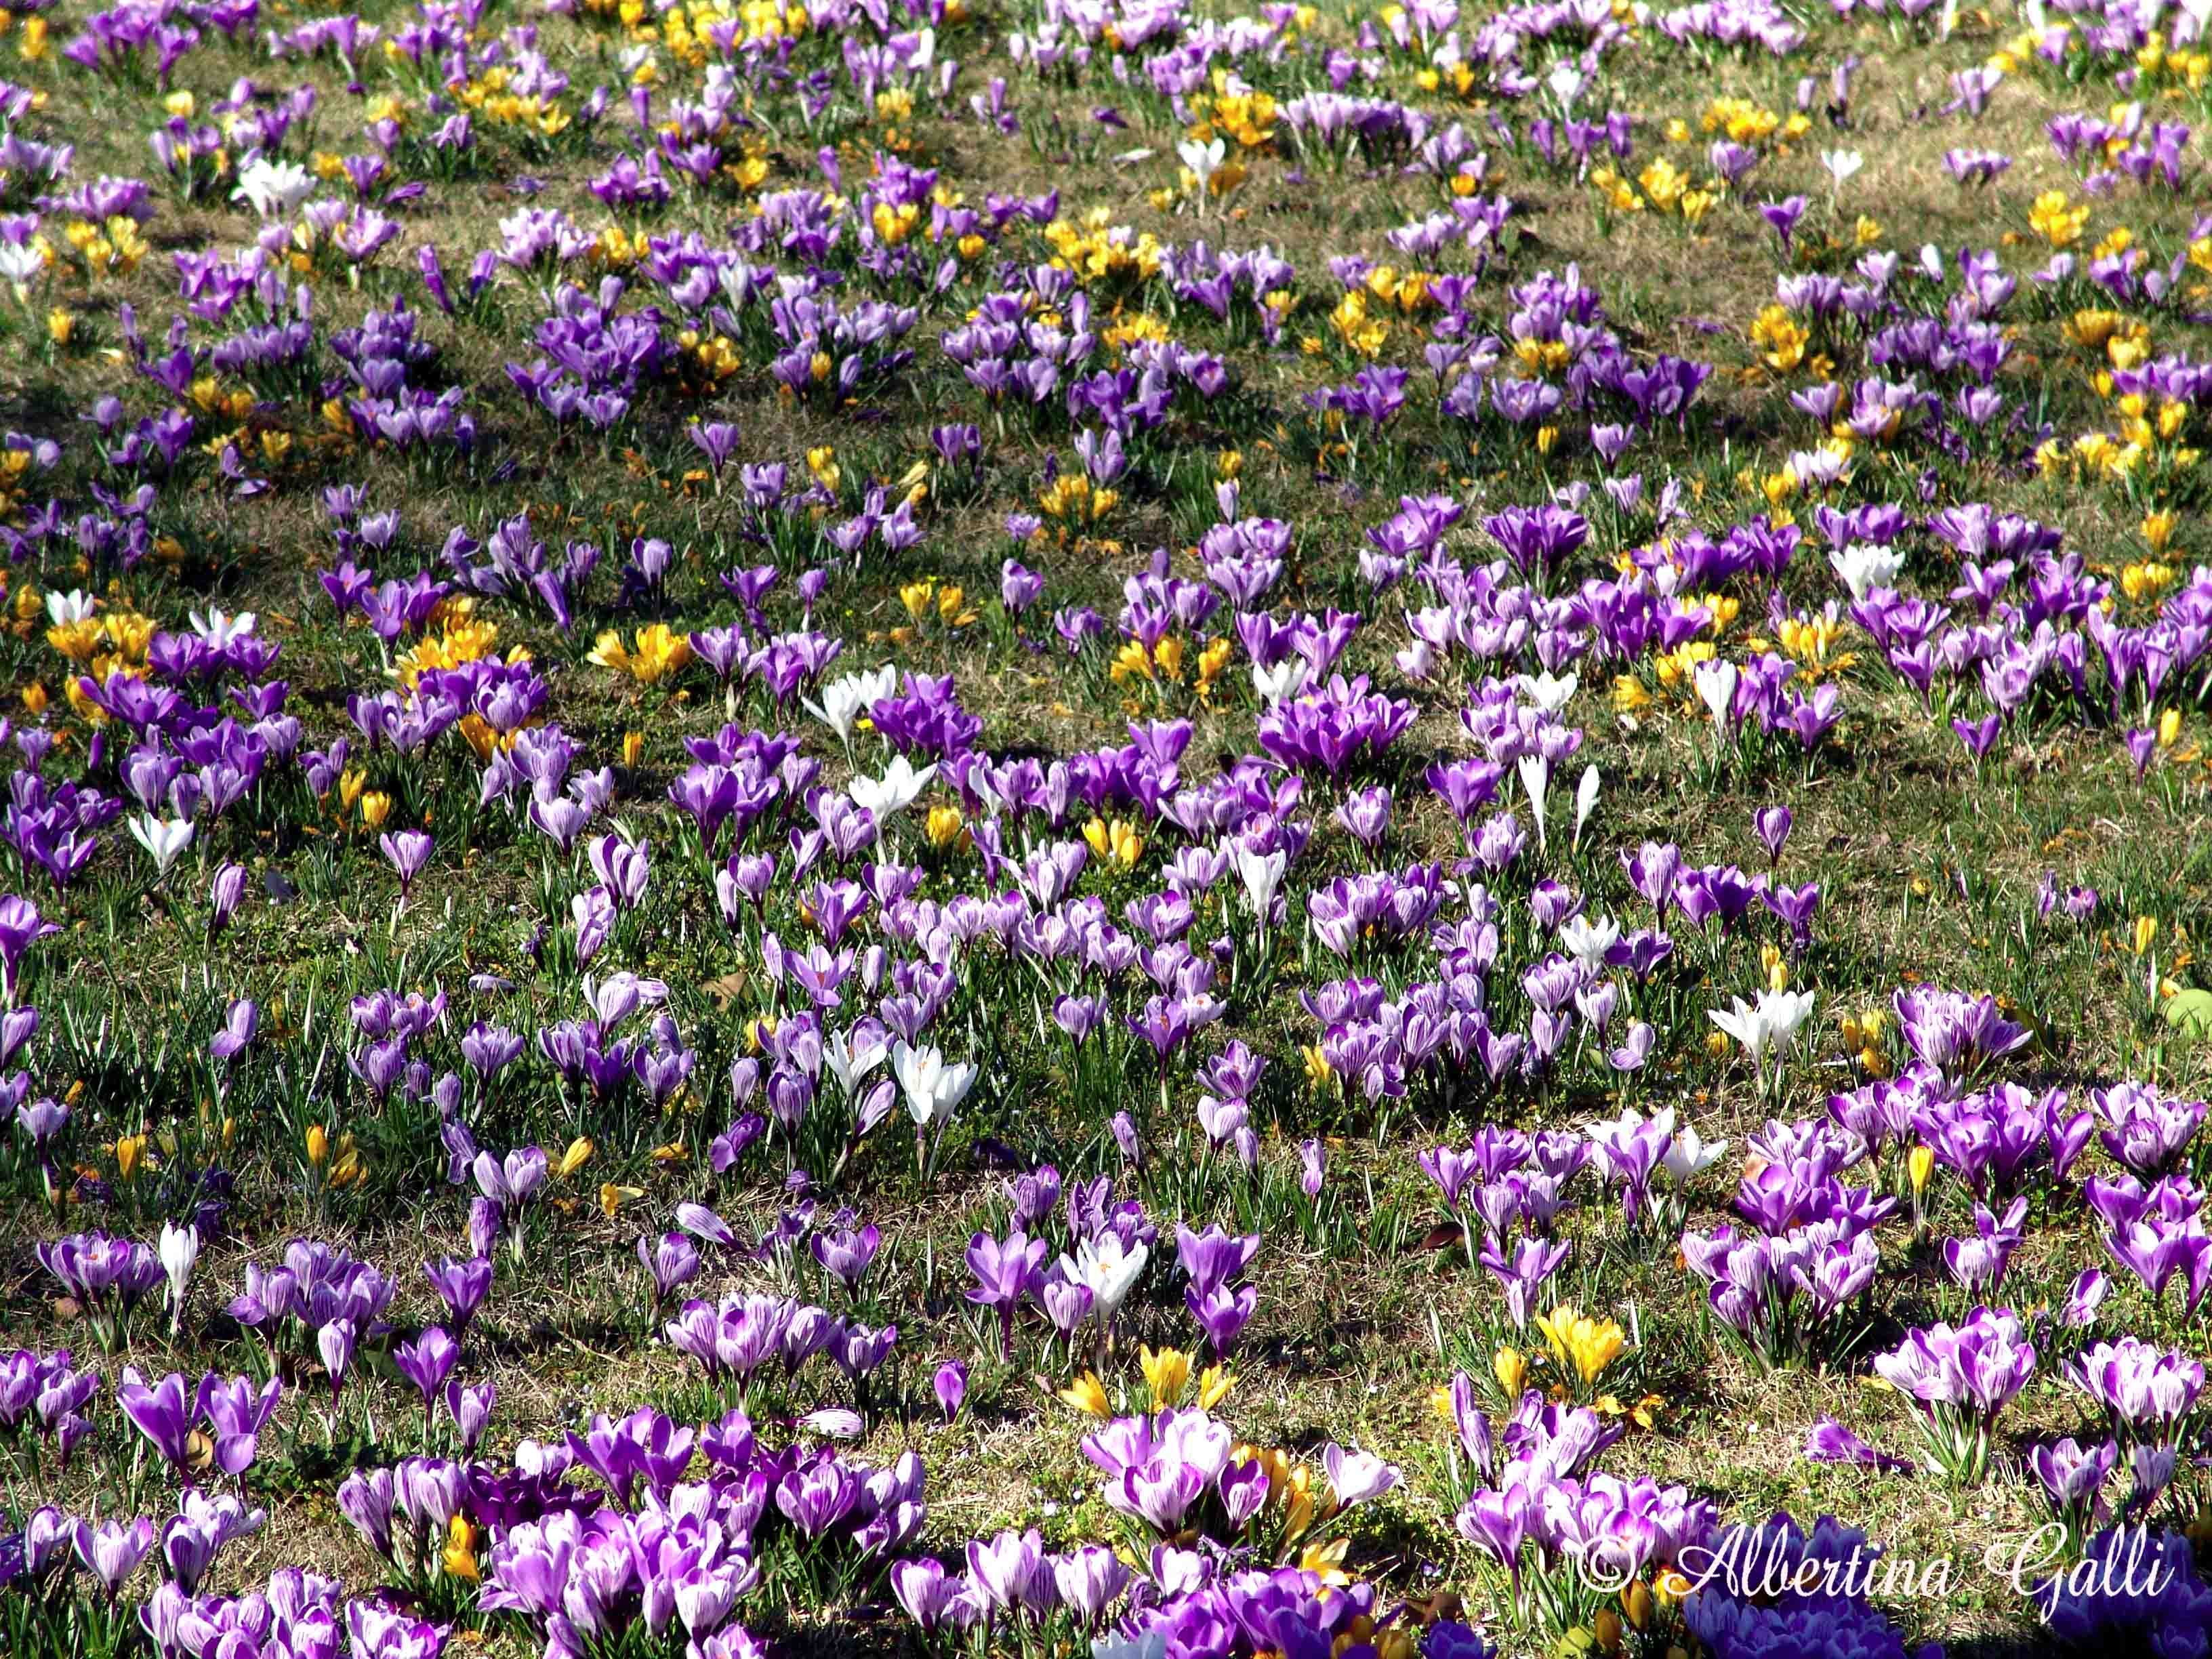 Crocus di Albertina Galli